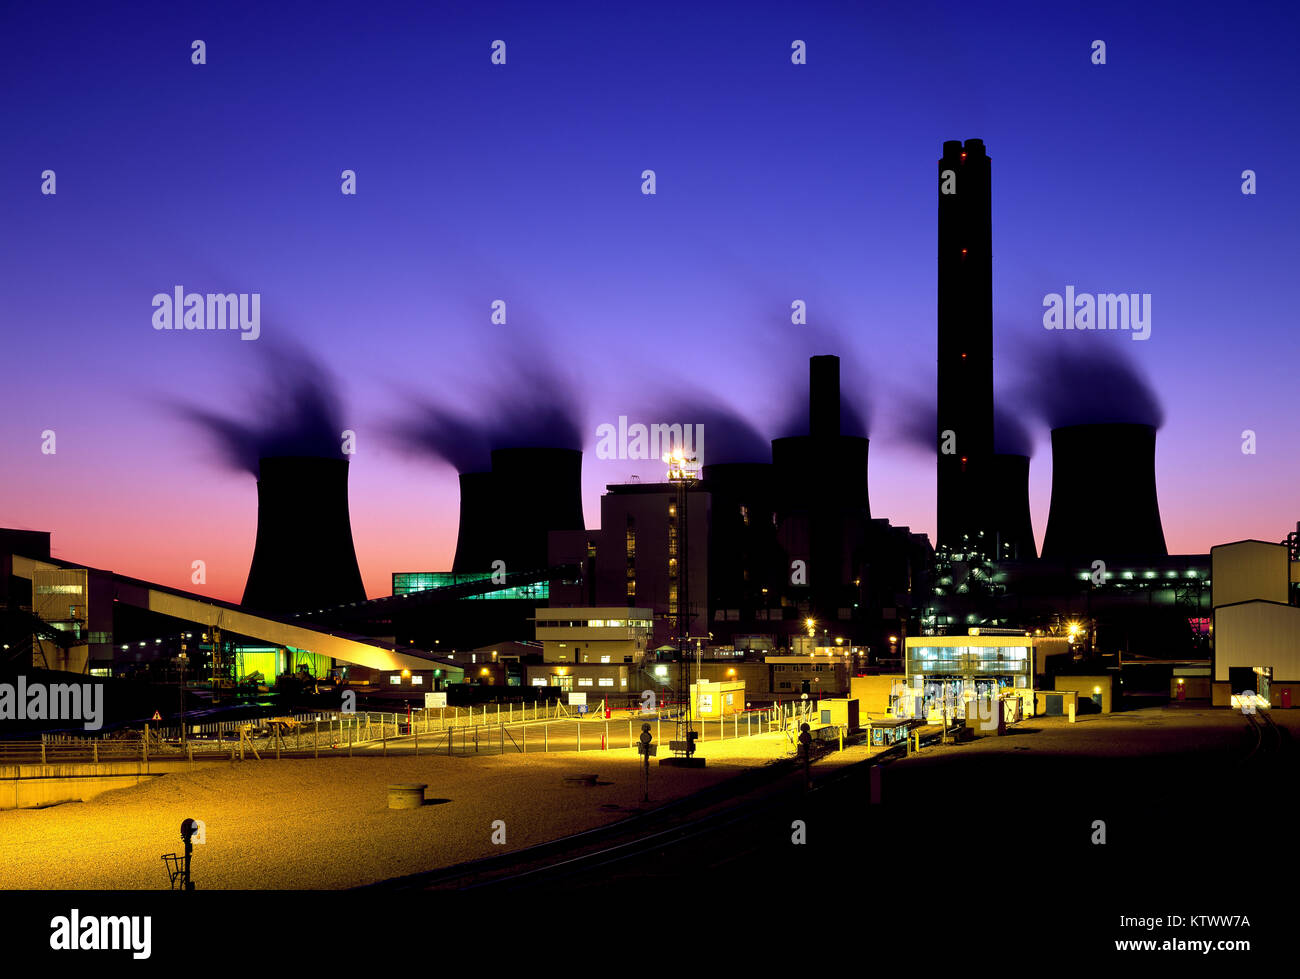 Ratcliffe on Soar coal fired Power Station, Nottinghamshire, England, UK - Stock Image